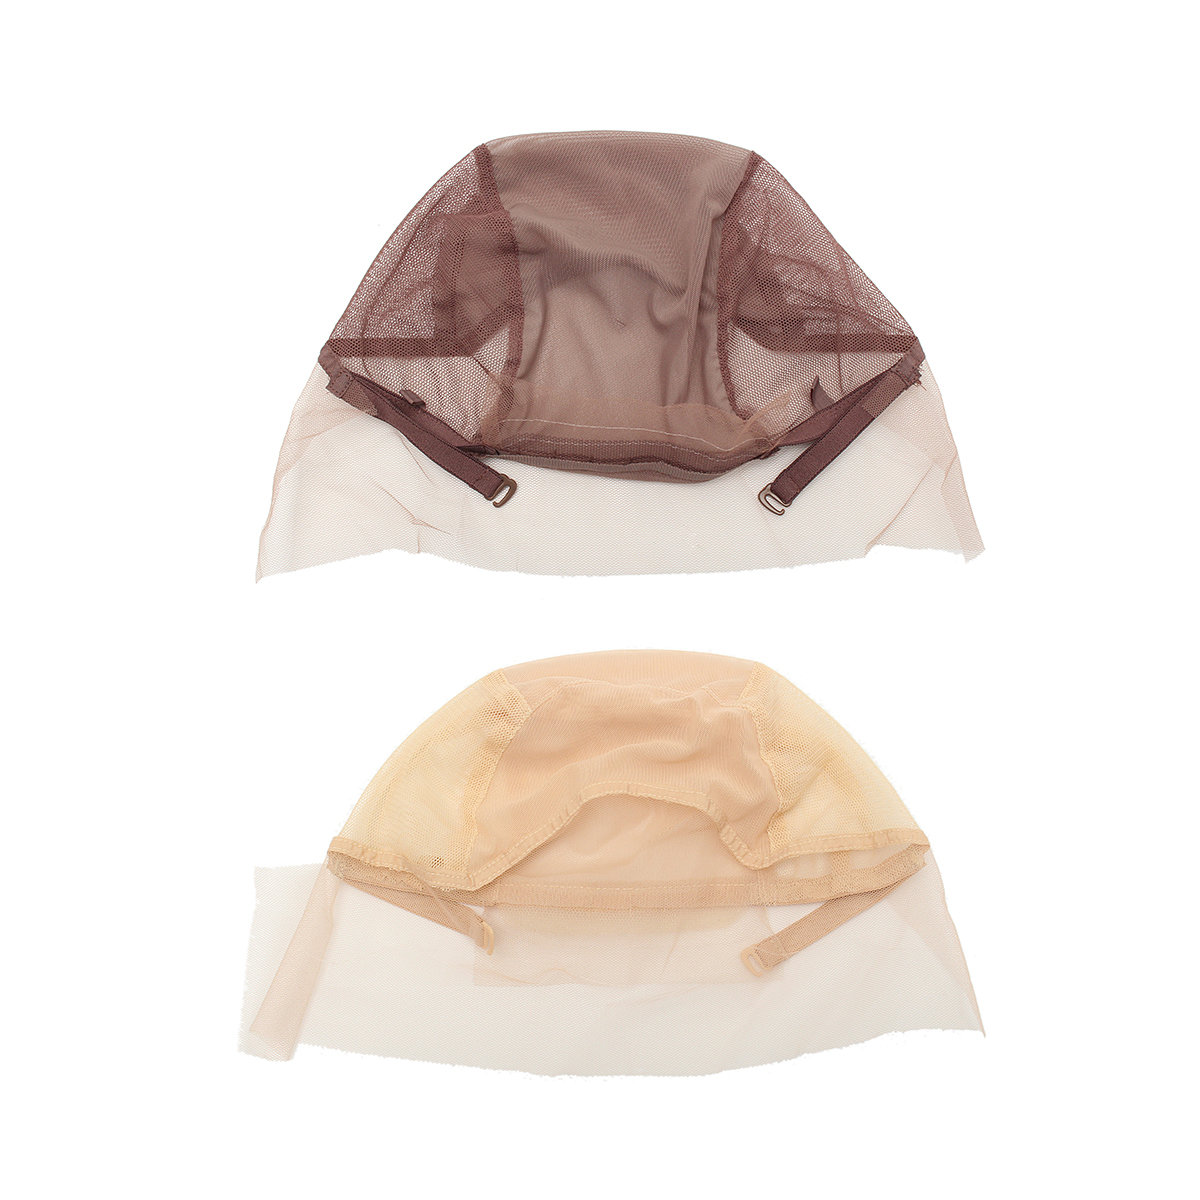 Mesh Lace Front Wig Cap Base For Making Wigs With Adjustable Strap Hairnets Styling Tool